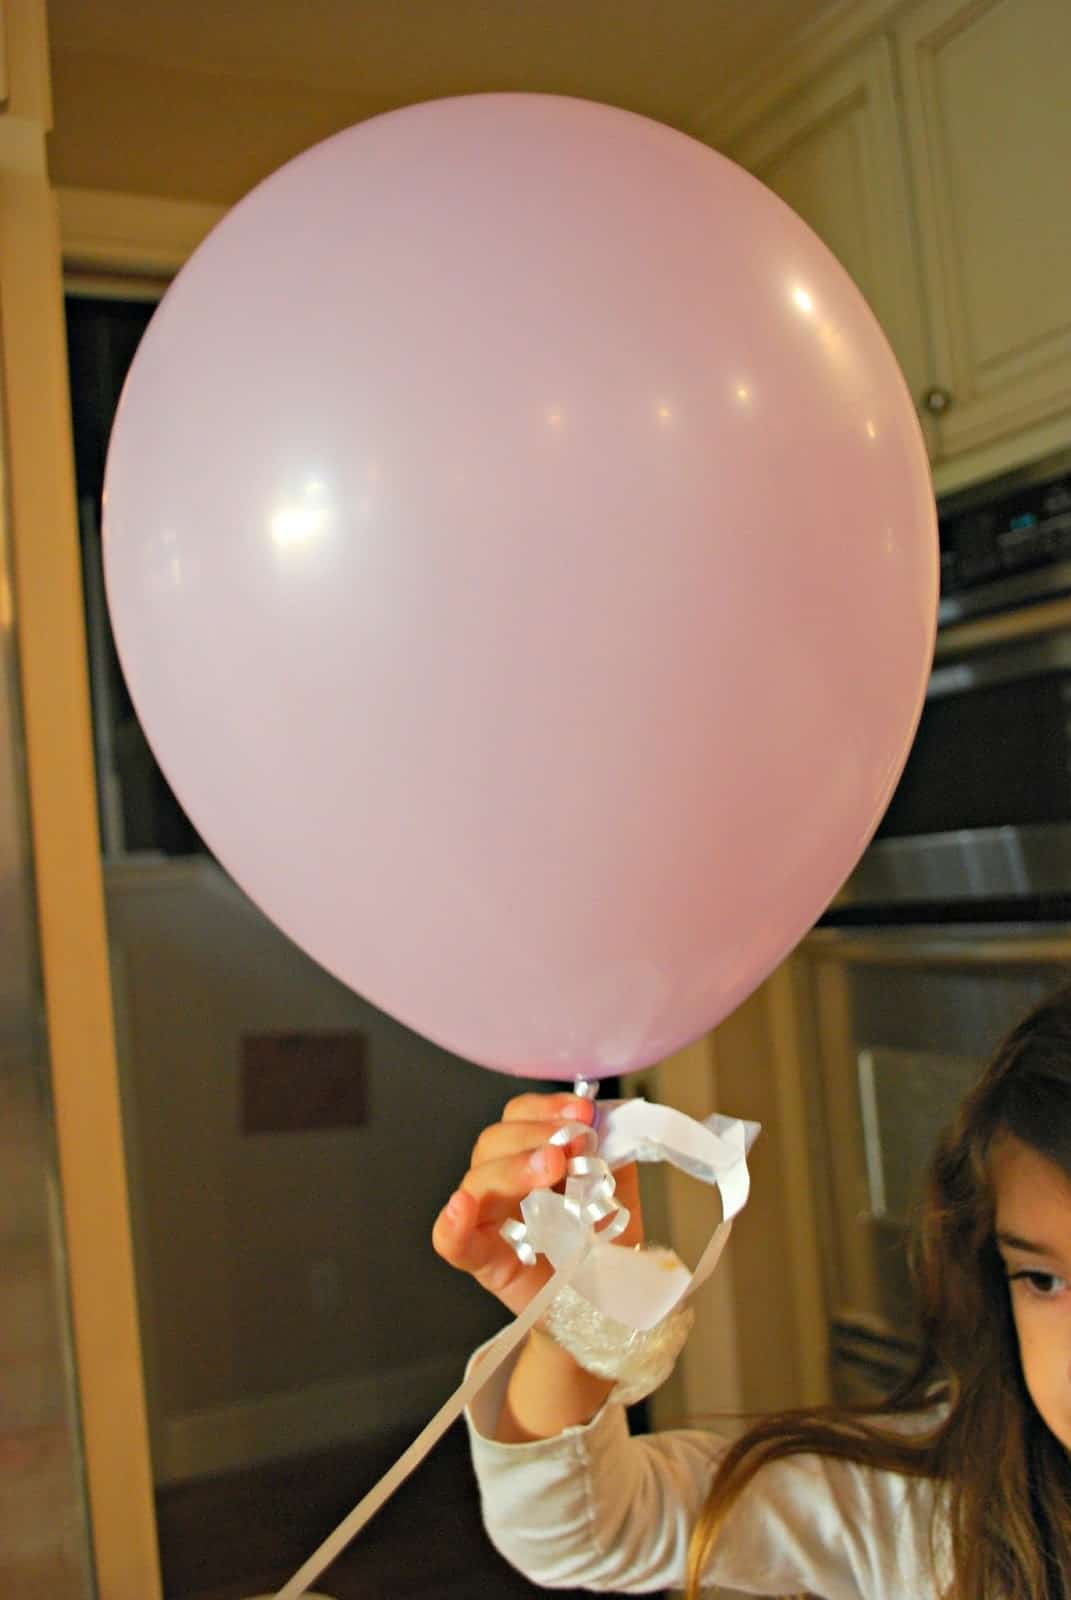 fun with helium balloons